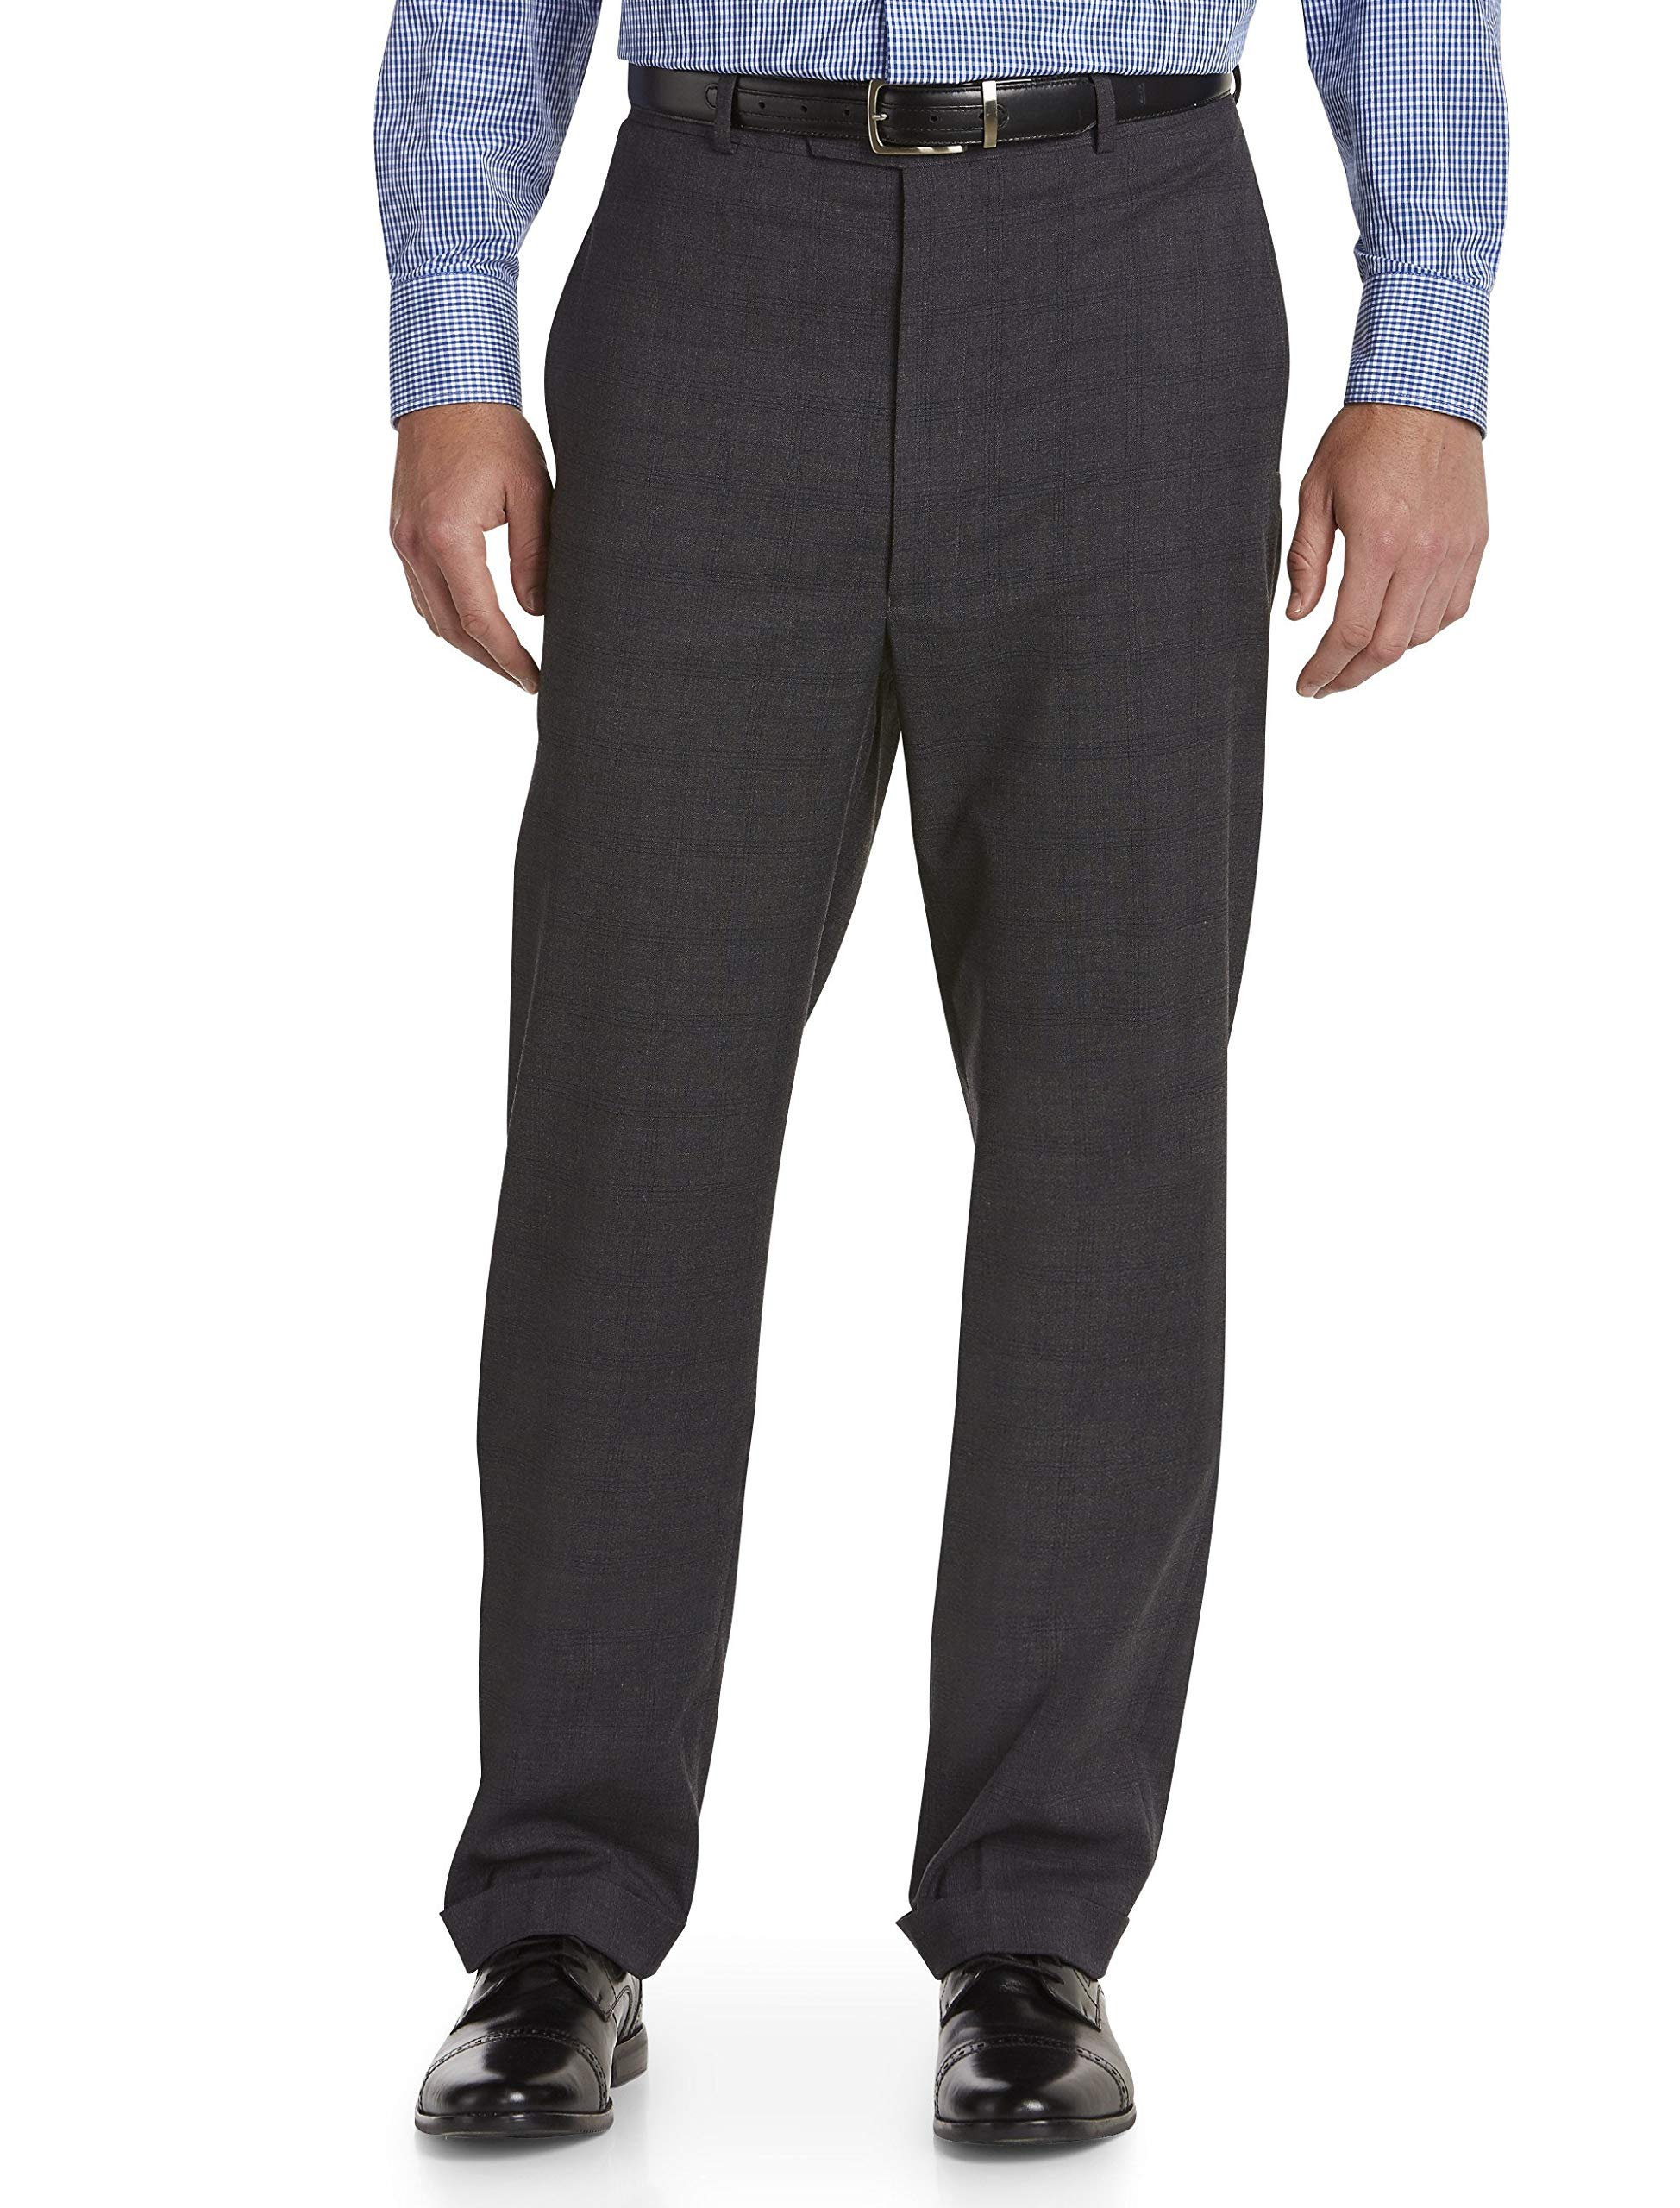 Geoffrey Beene Big and Tall Plaid Suit Pants Charcoal by Geoffrey Beene